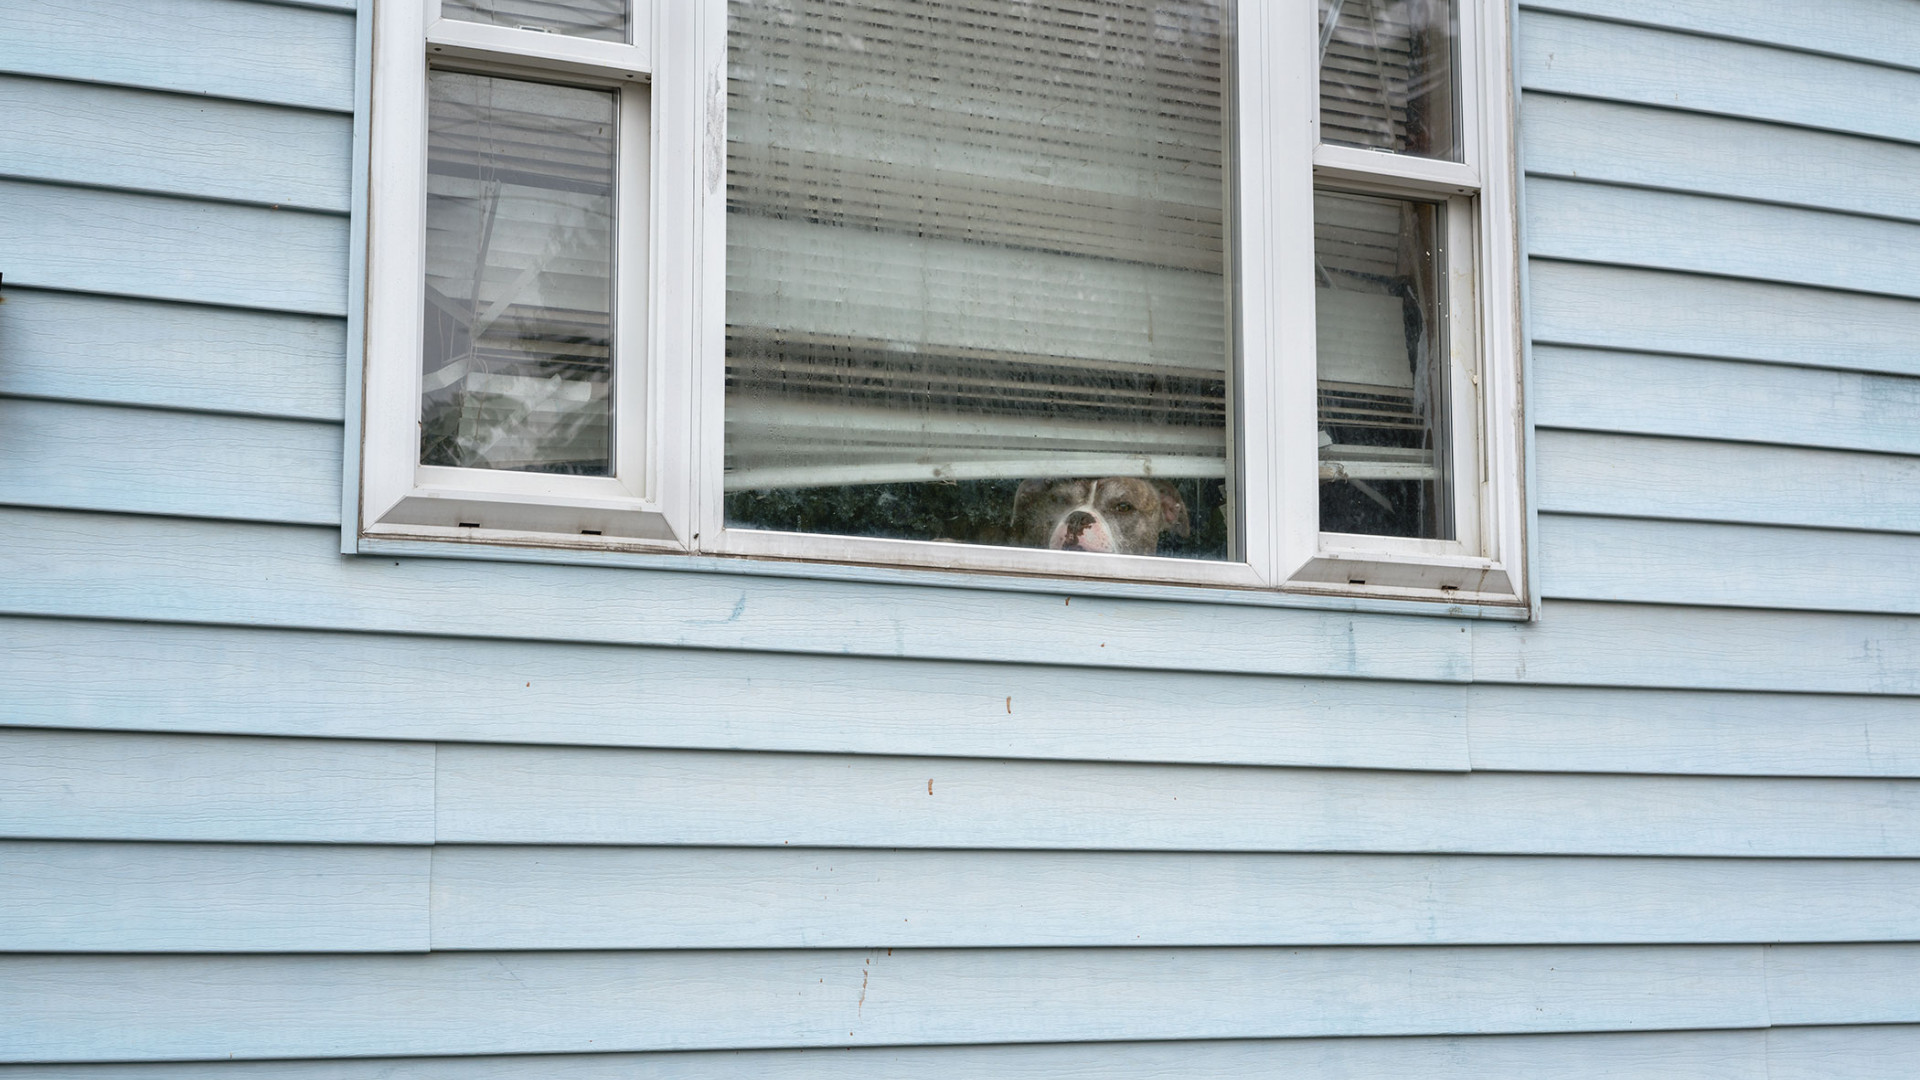 A dog staring out of a window at the camera